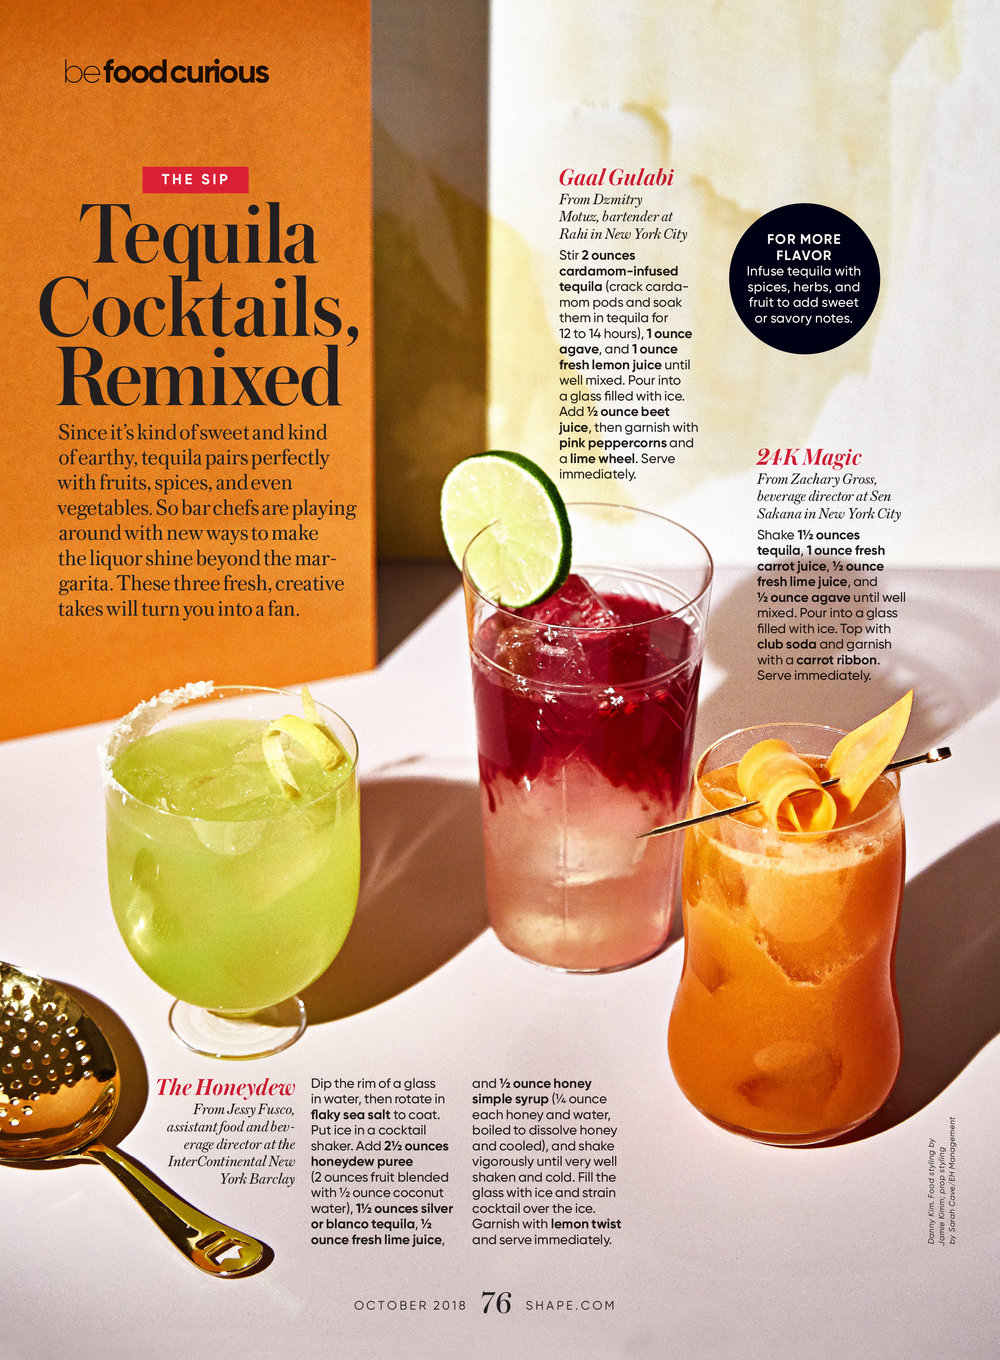 Tequila Cocktails, Remixed; October 2018